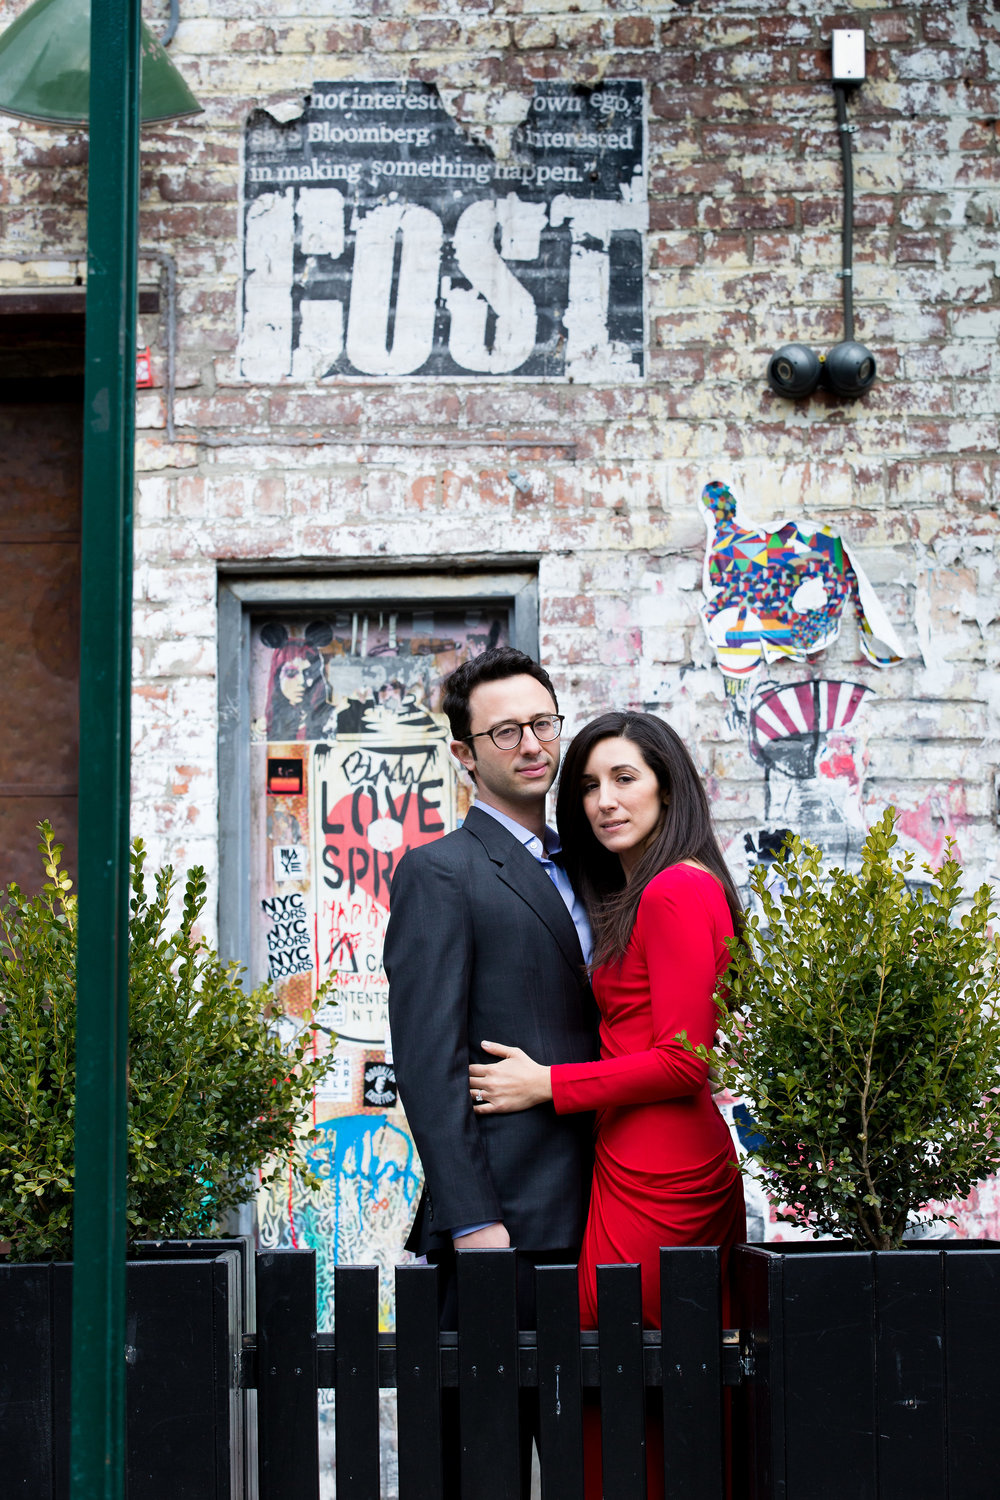 engagement-shoot-meat-packing-district-nyc-228.jpg